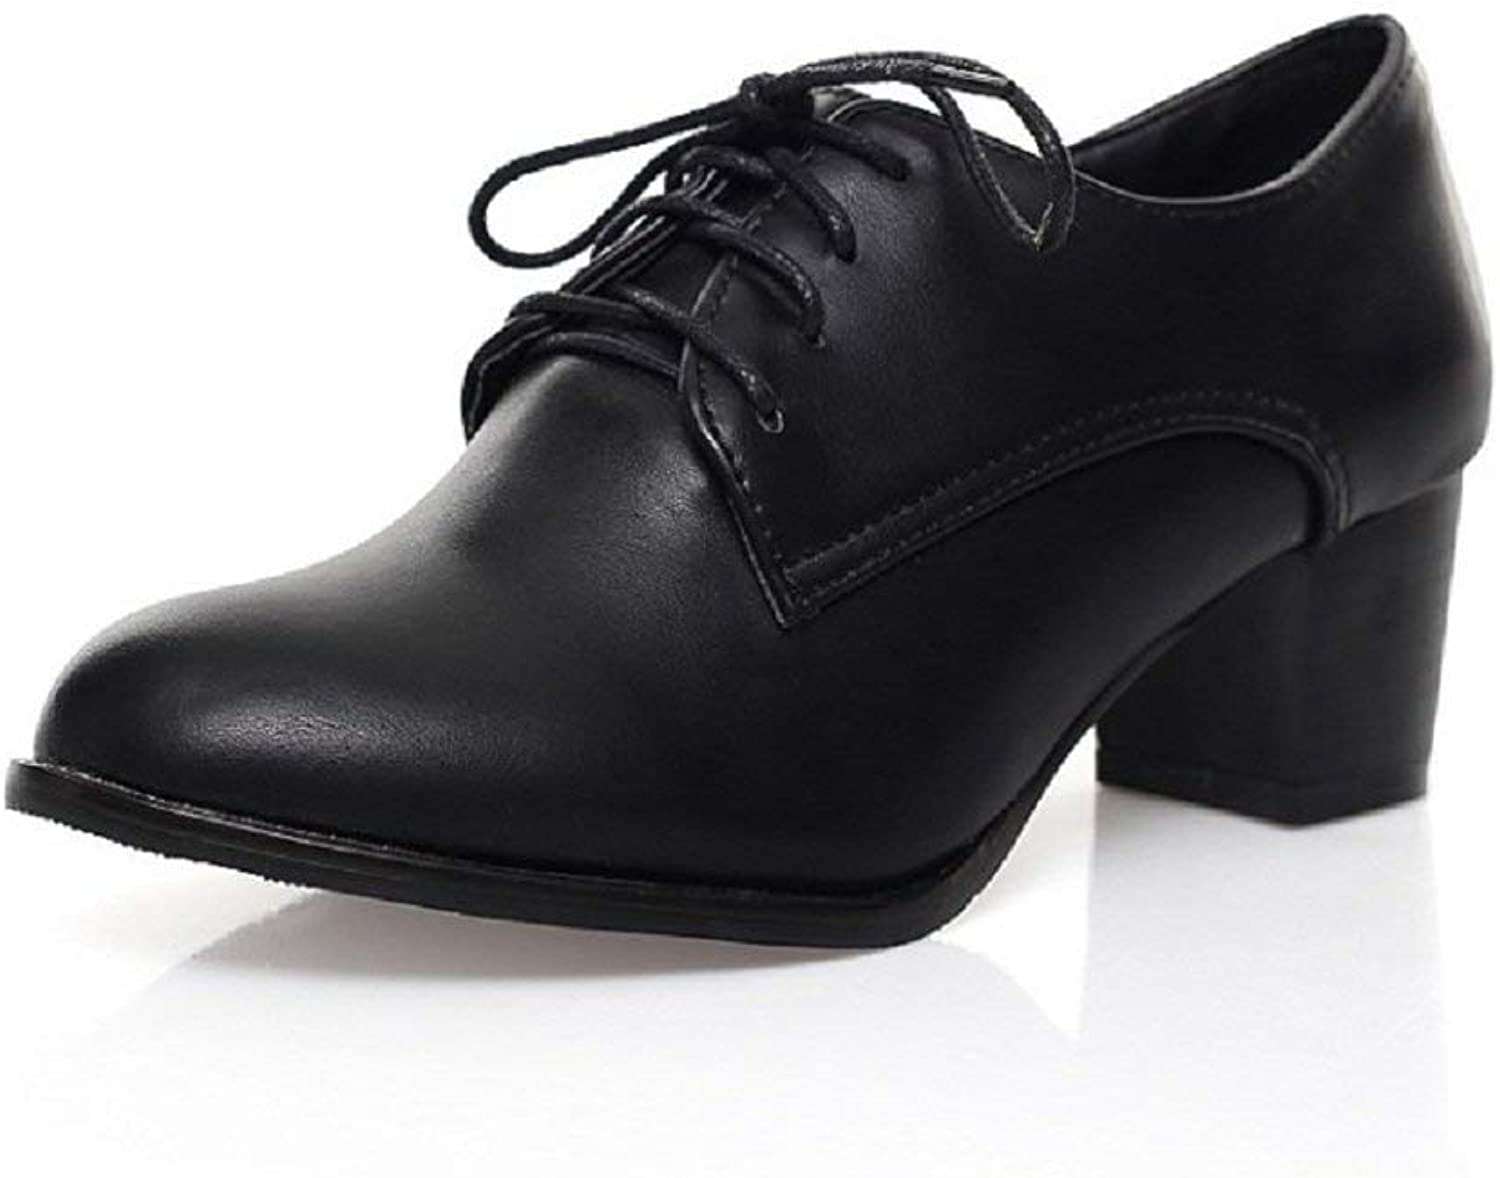 Wallhewb Fashion Womens Oxfords shoes Mid Heel Lace Up Black Highten Increasing Pointed Toe Joker Small Fellow Skinny Comfortable for Women Platform Ankle Heels Fashion Black 7.5 M US Oxford shoes